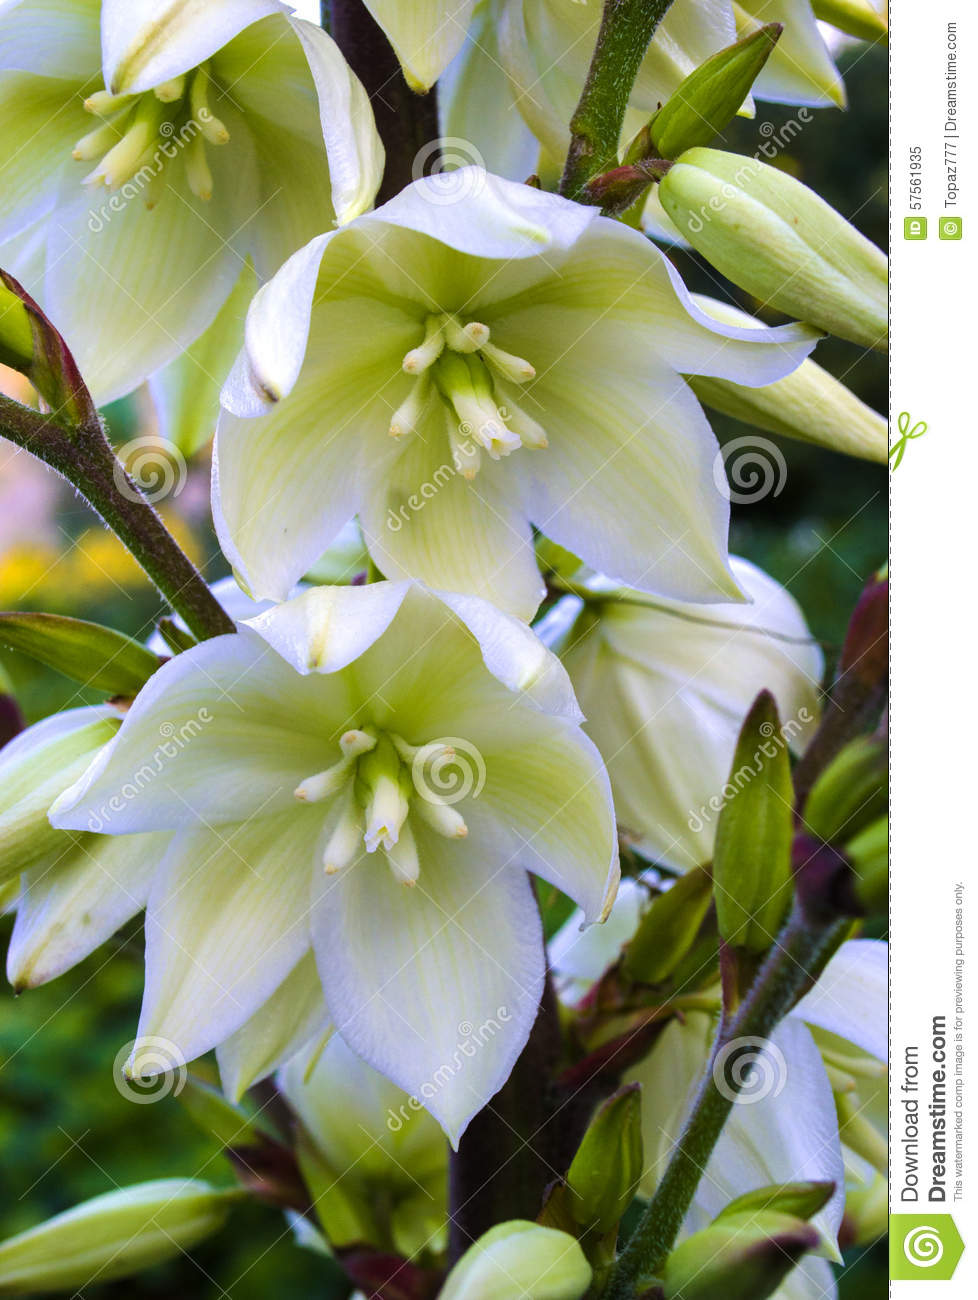 Bloom Flower 14 Inch Living Room Modern Decorative Wall Clock: Blooming Yucca Stock Photo